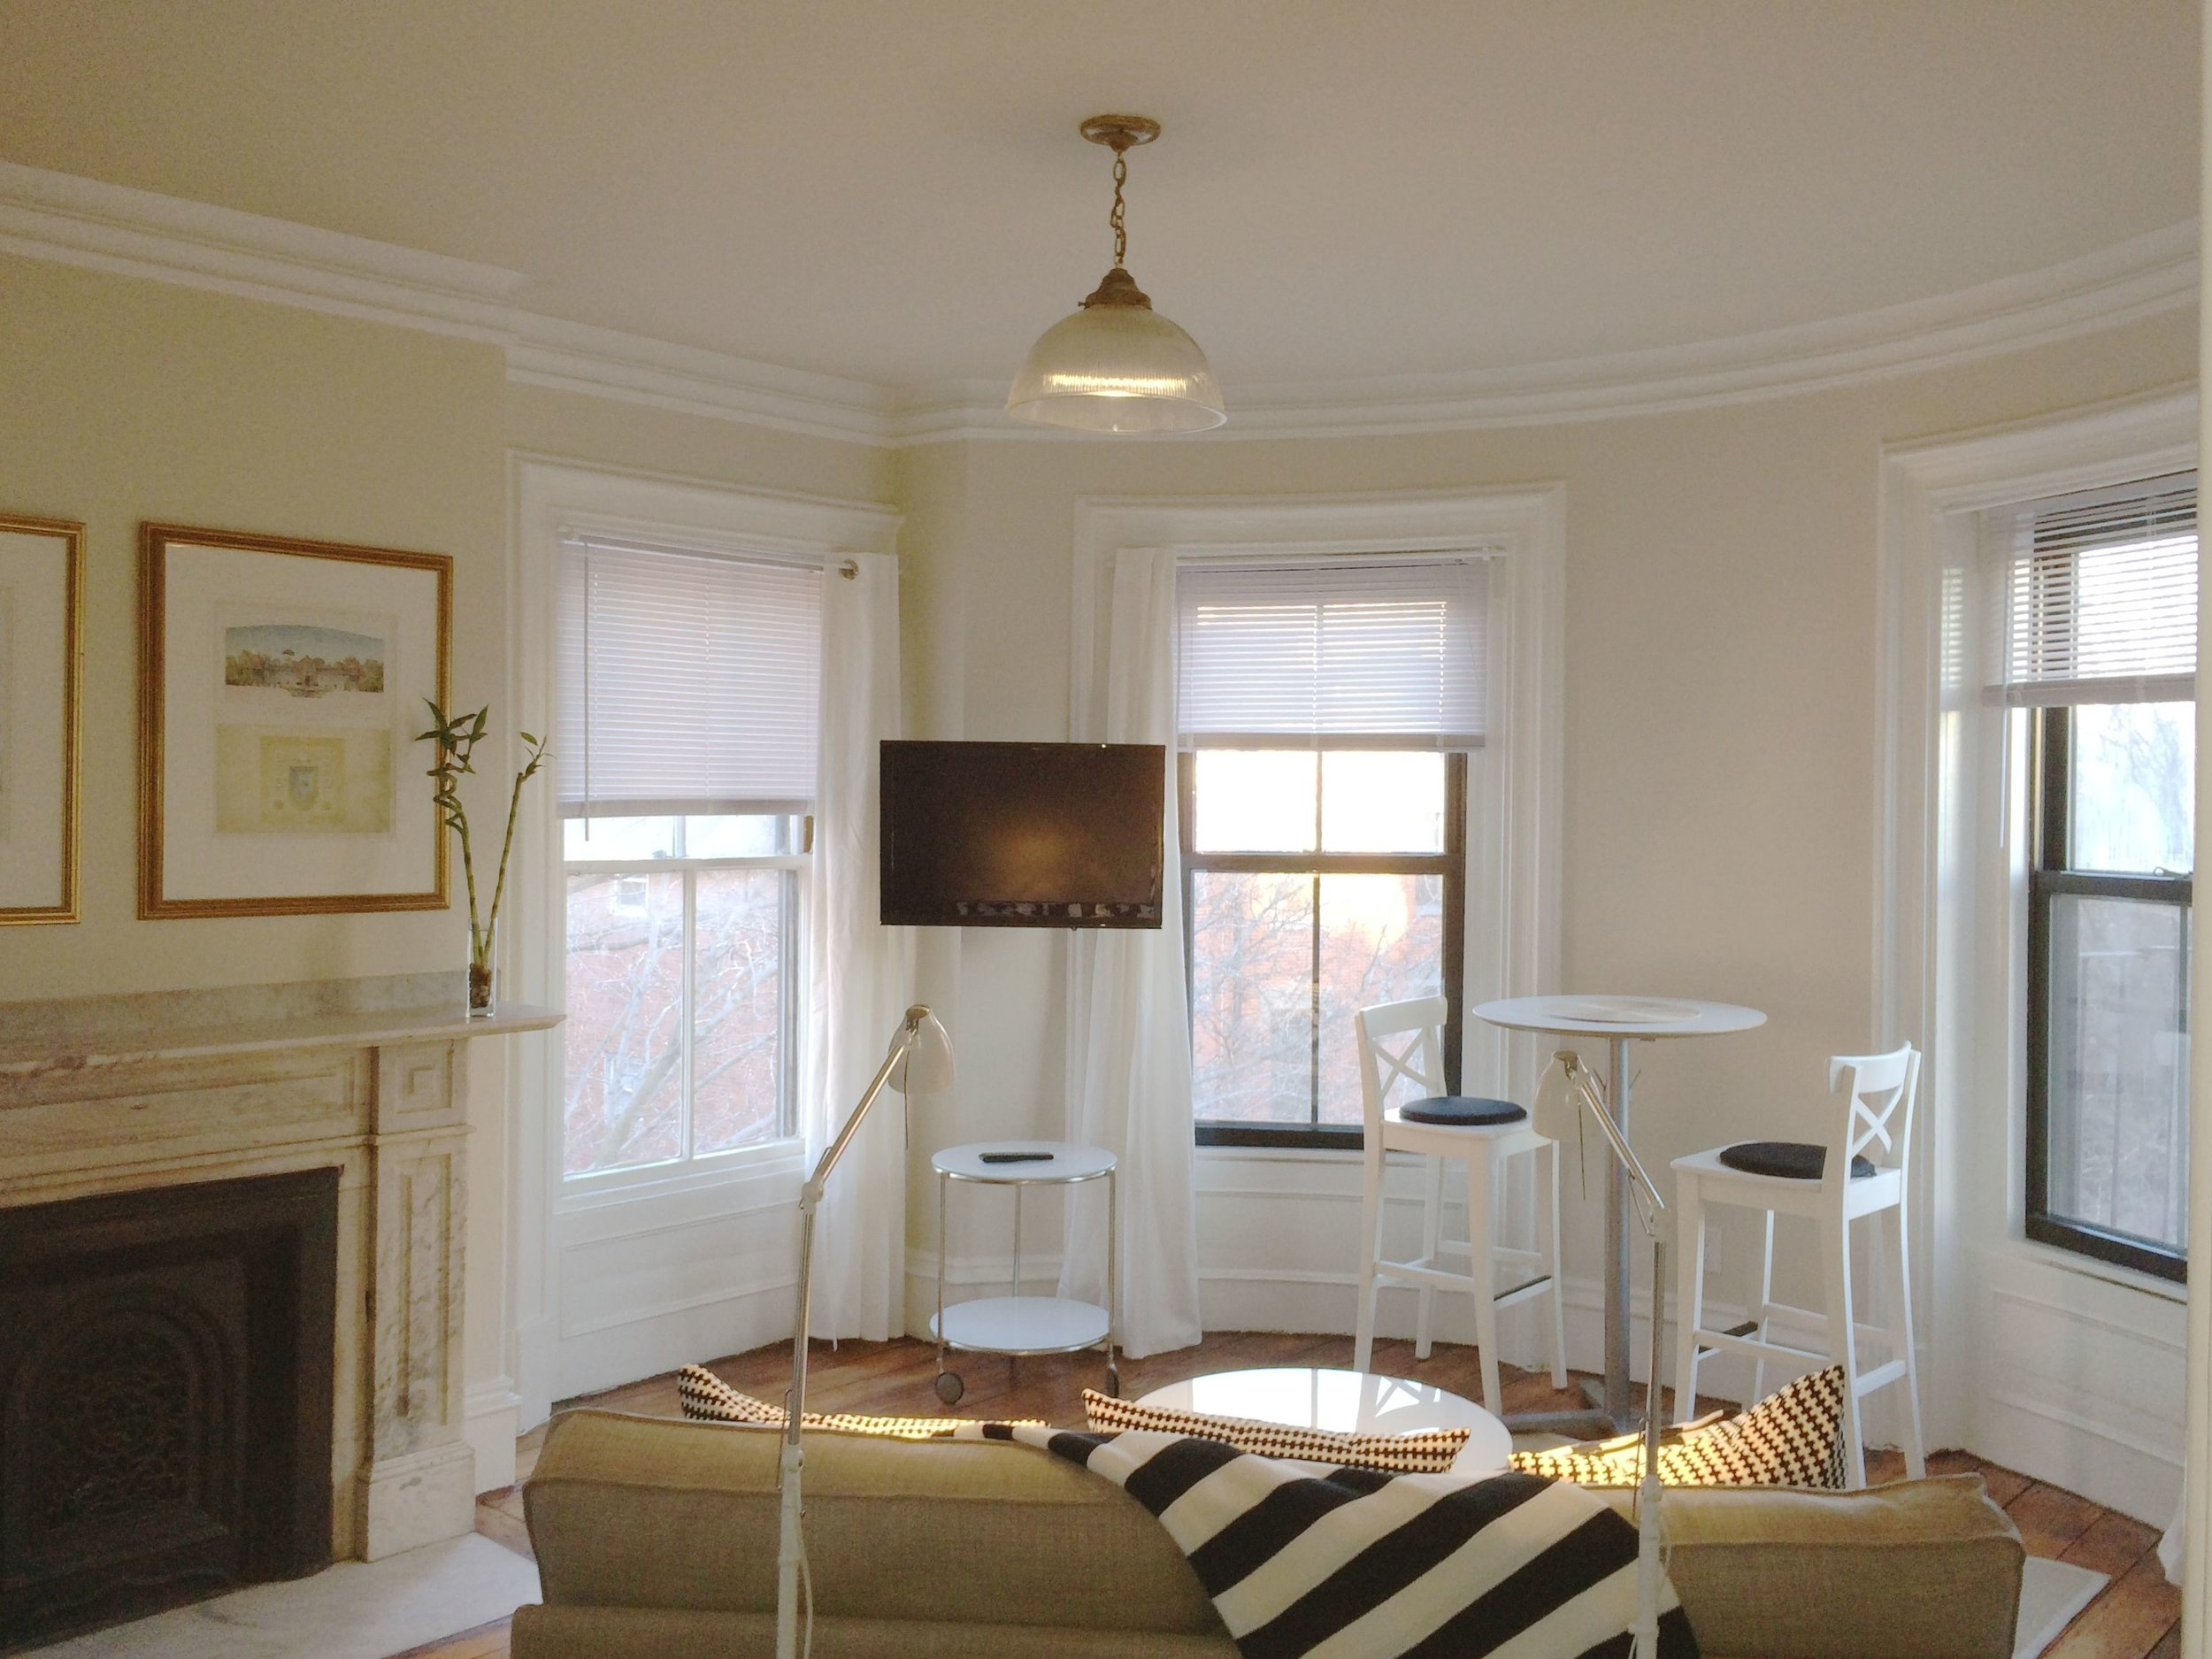 Boutique South End $4,800 per month   Streaming sunlight in the south facing gem. Small one bed-nook plus bonus space.